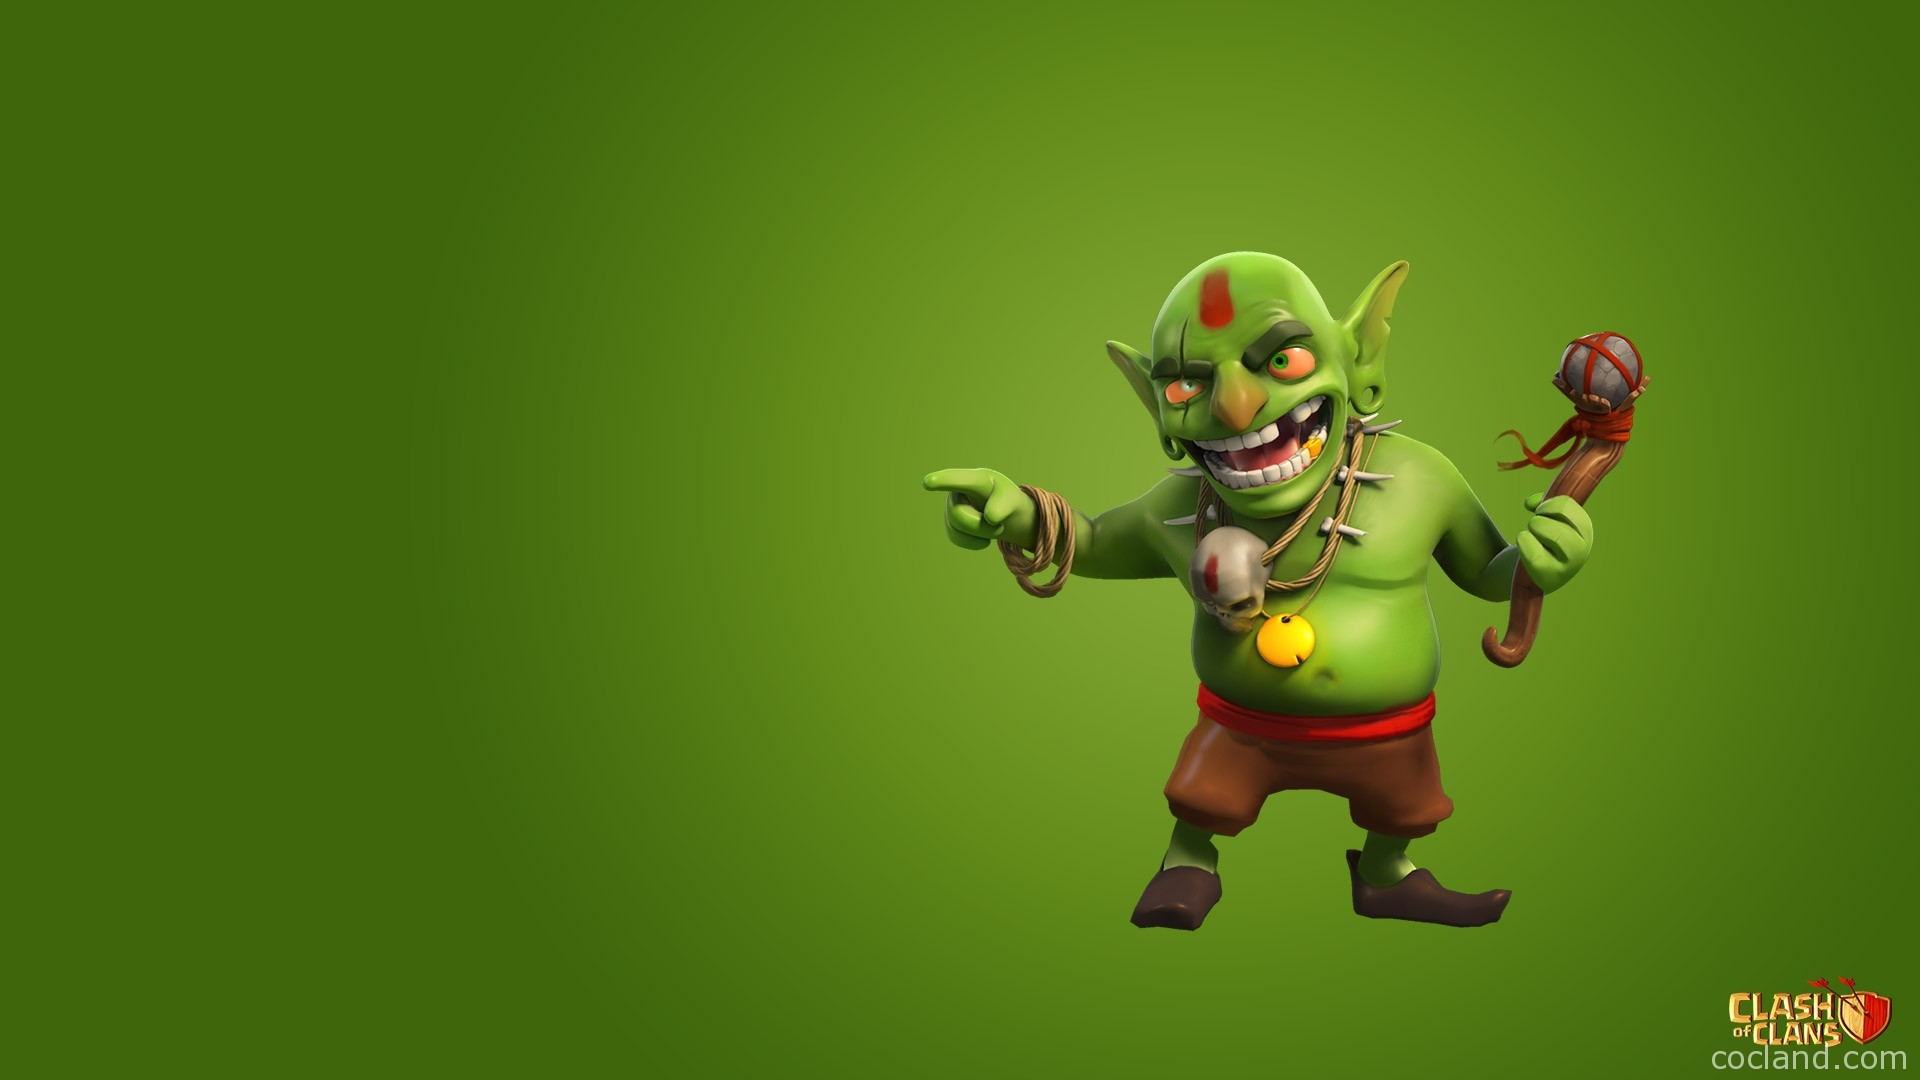 1920x1080 Awesome Goblin Wallpapers | 2902118 Goblin Wallpapers,